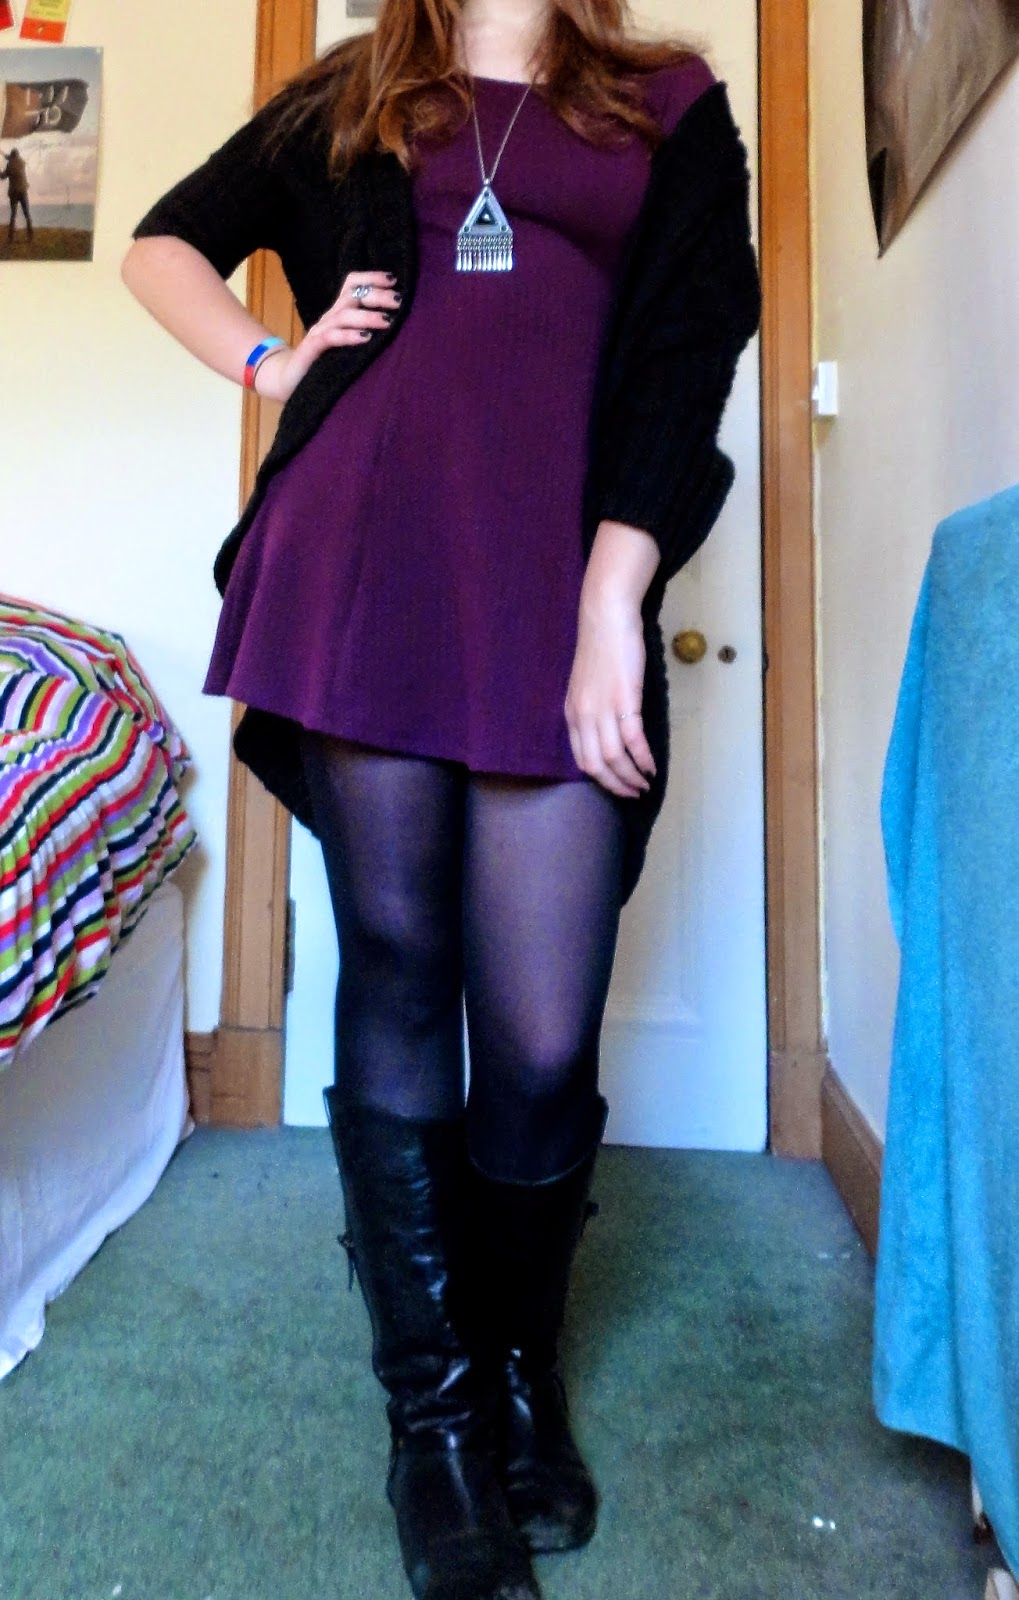 outfit of purple dress, black woollen cardigan & boots